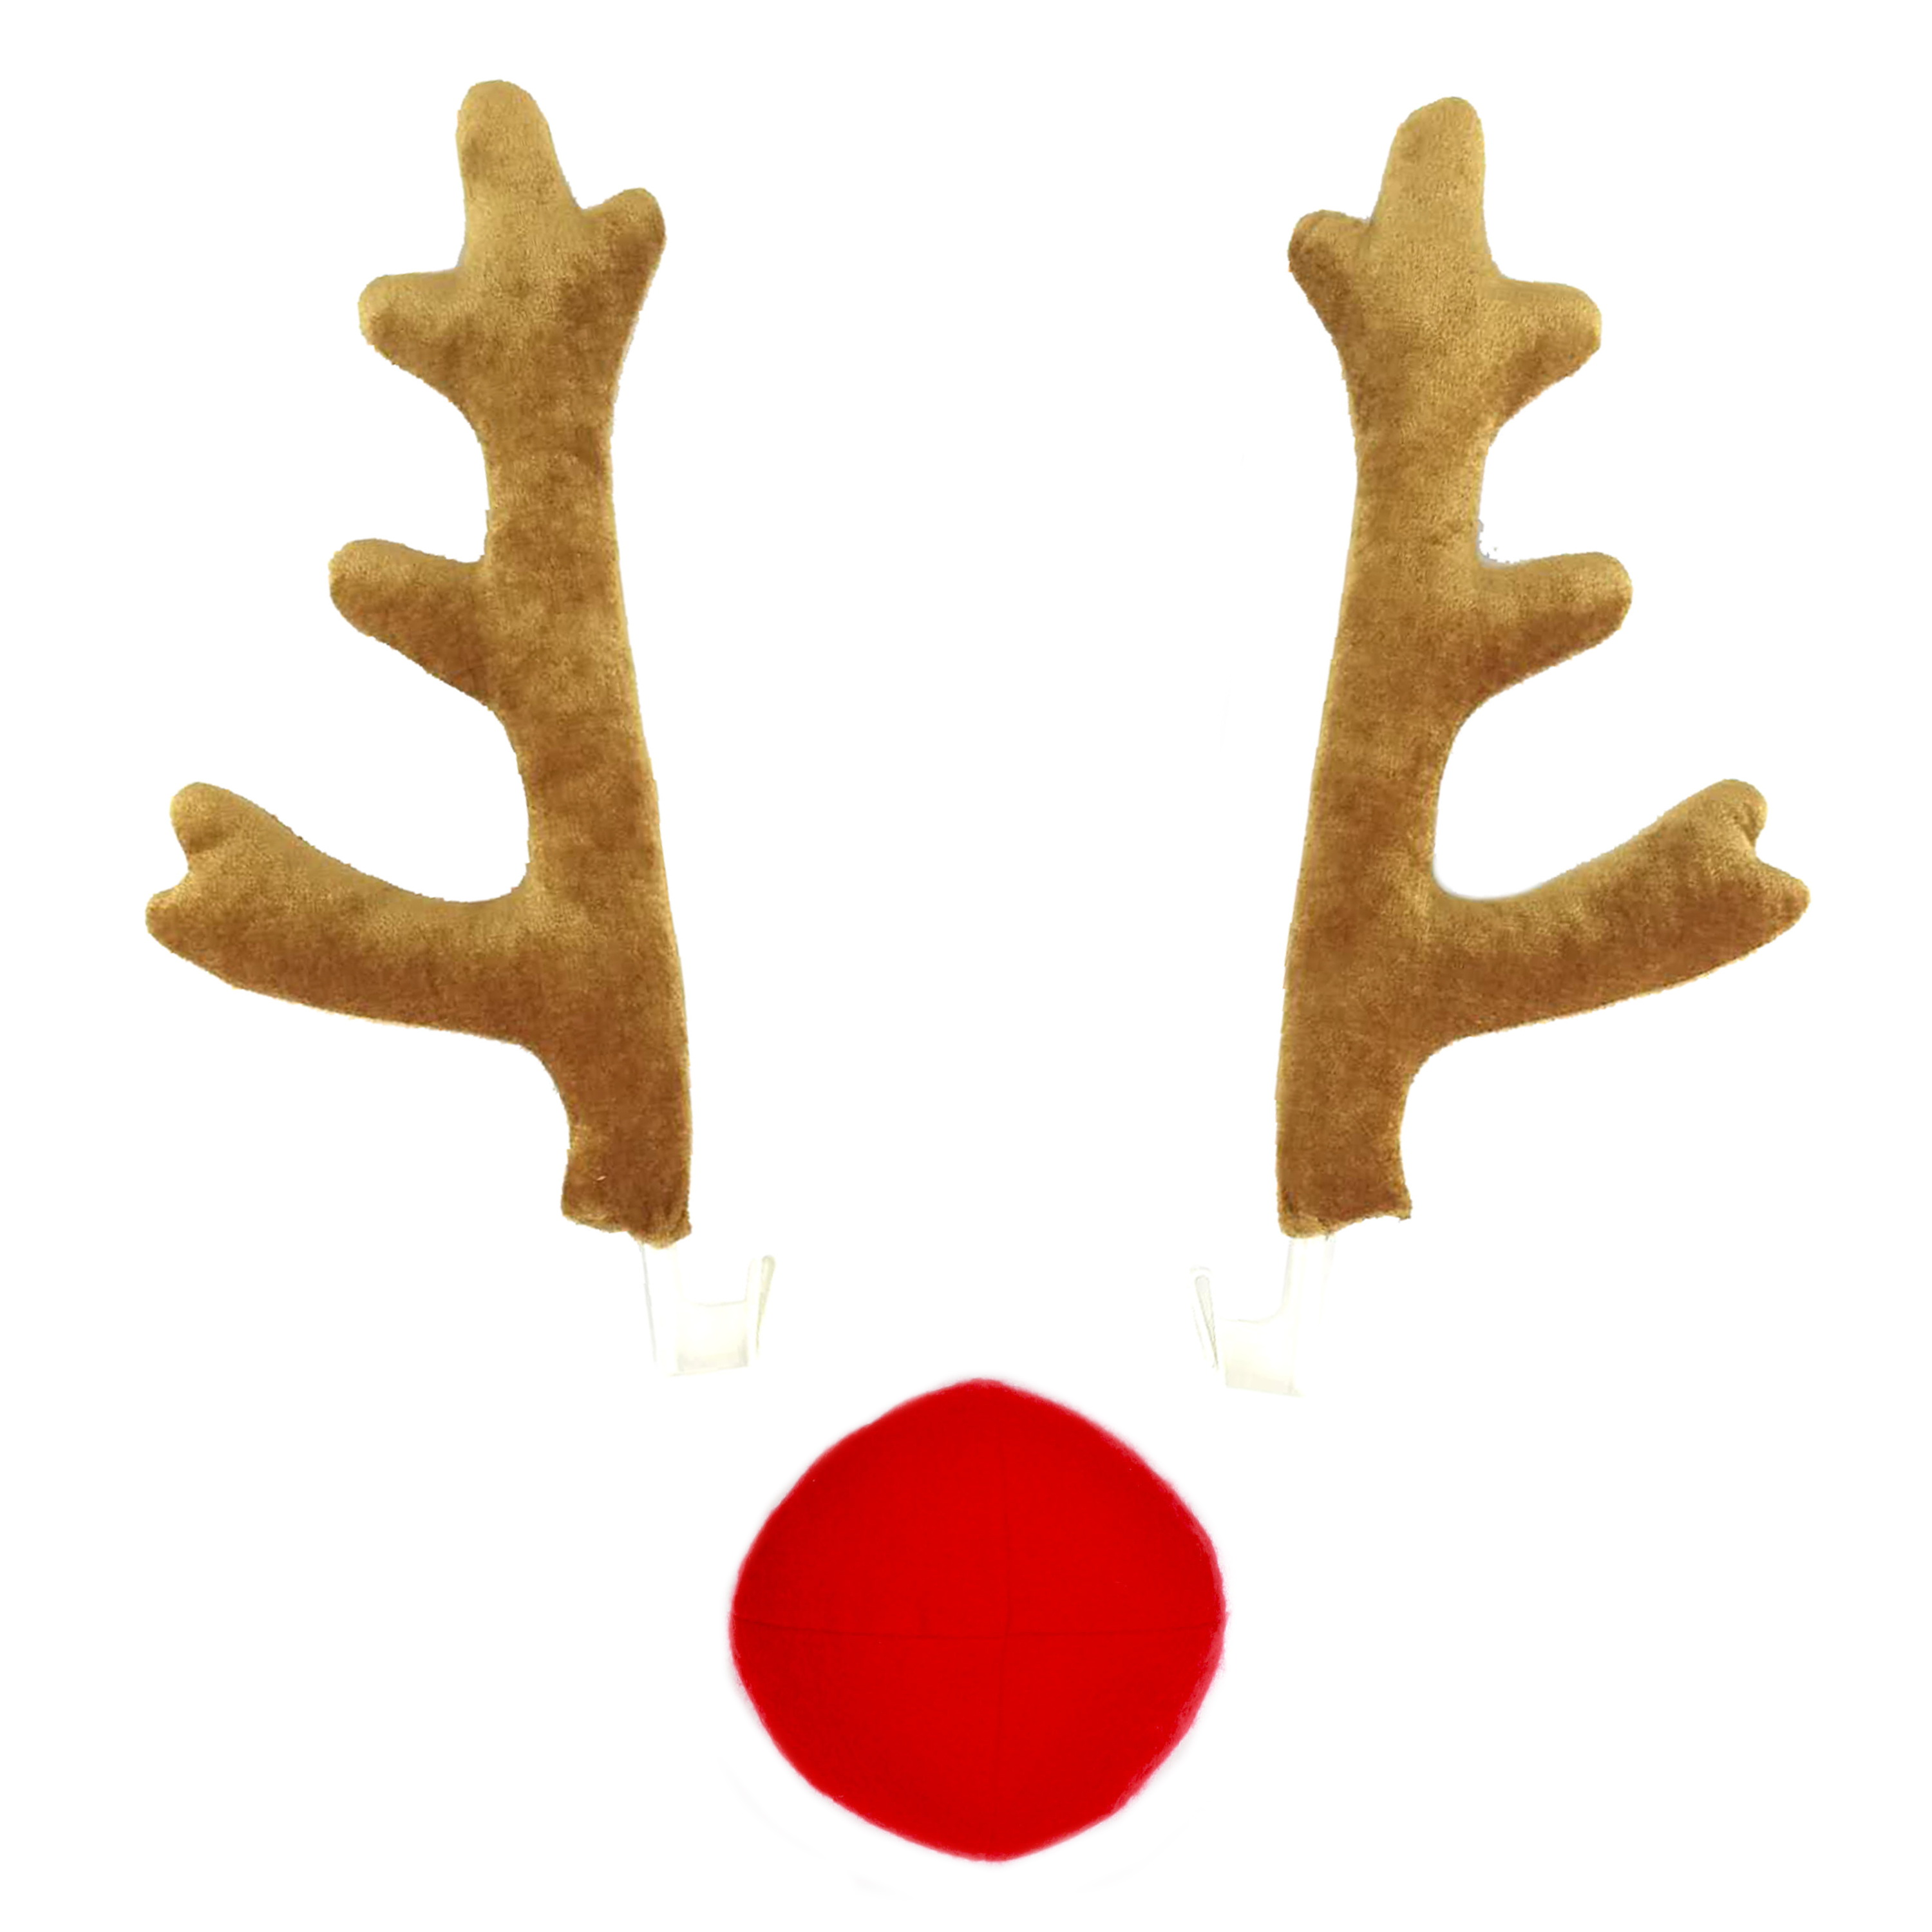 37036c0b8 Rudolph The Red Nosed Reindeer Christmas Rudolph Car Costume – Reindeer Tan  Antlers and Red Nose set - Walmart.com